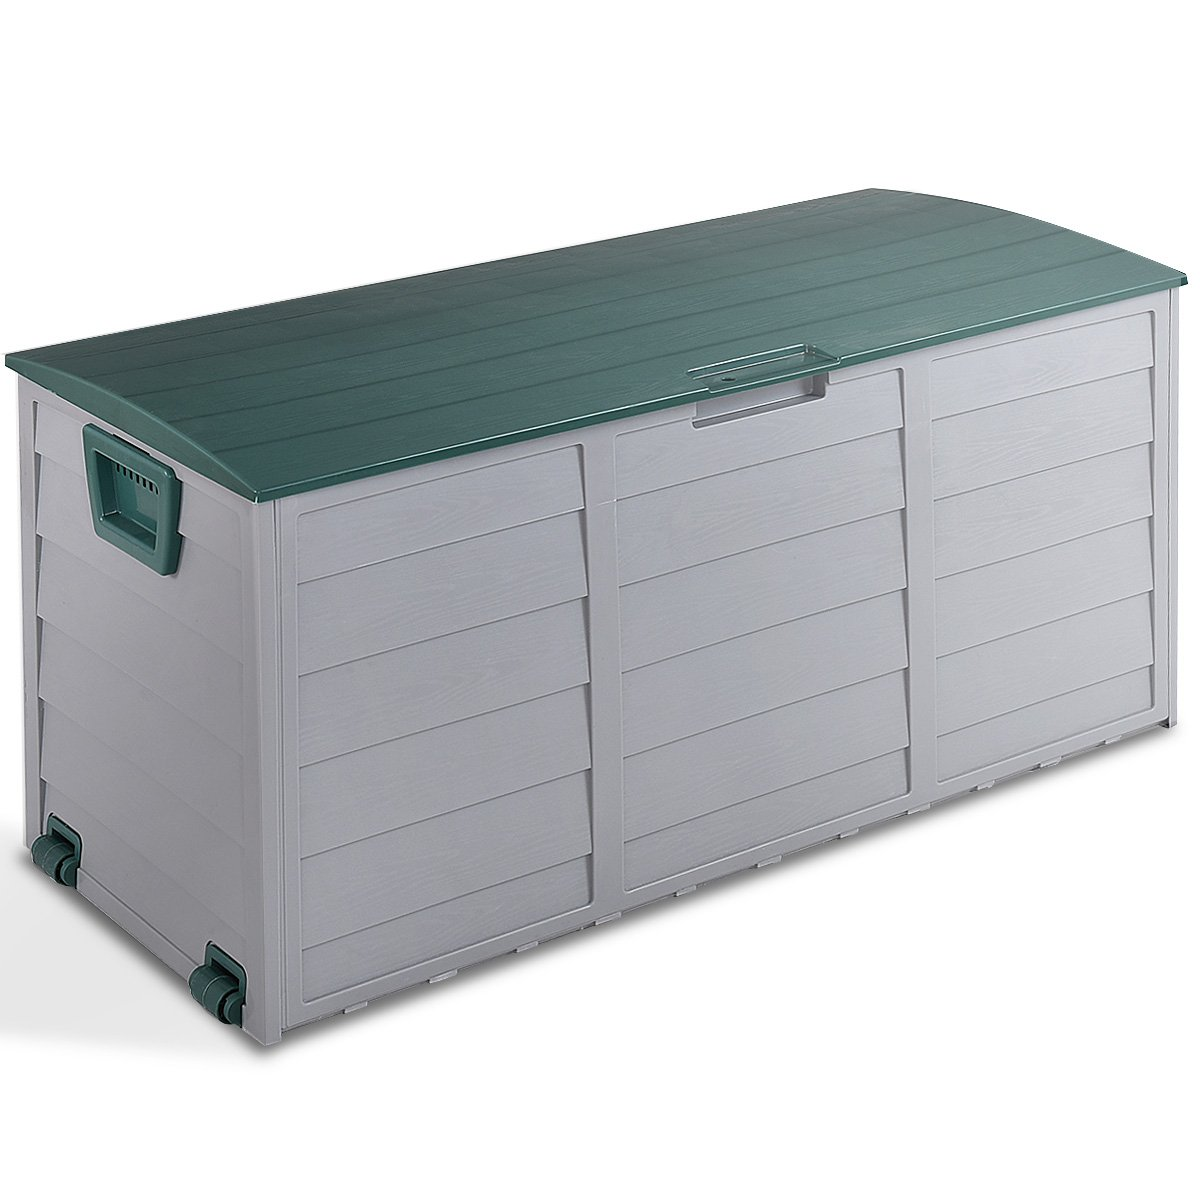 Giantex 79 Gallon Plastic Deck Storage Container Box Outdoor Patio Garden Garage Shed Backyard Furniture with Deep Storage Compartment Easy Lift Lid, Grey/Green HW55980New